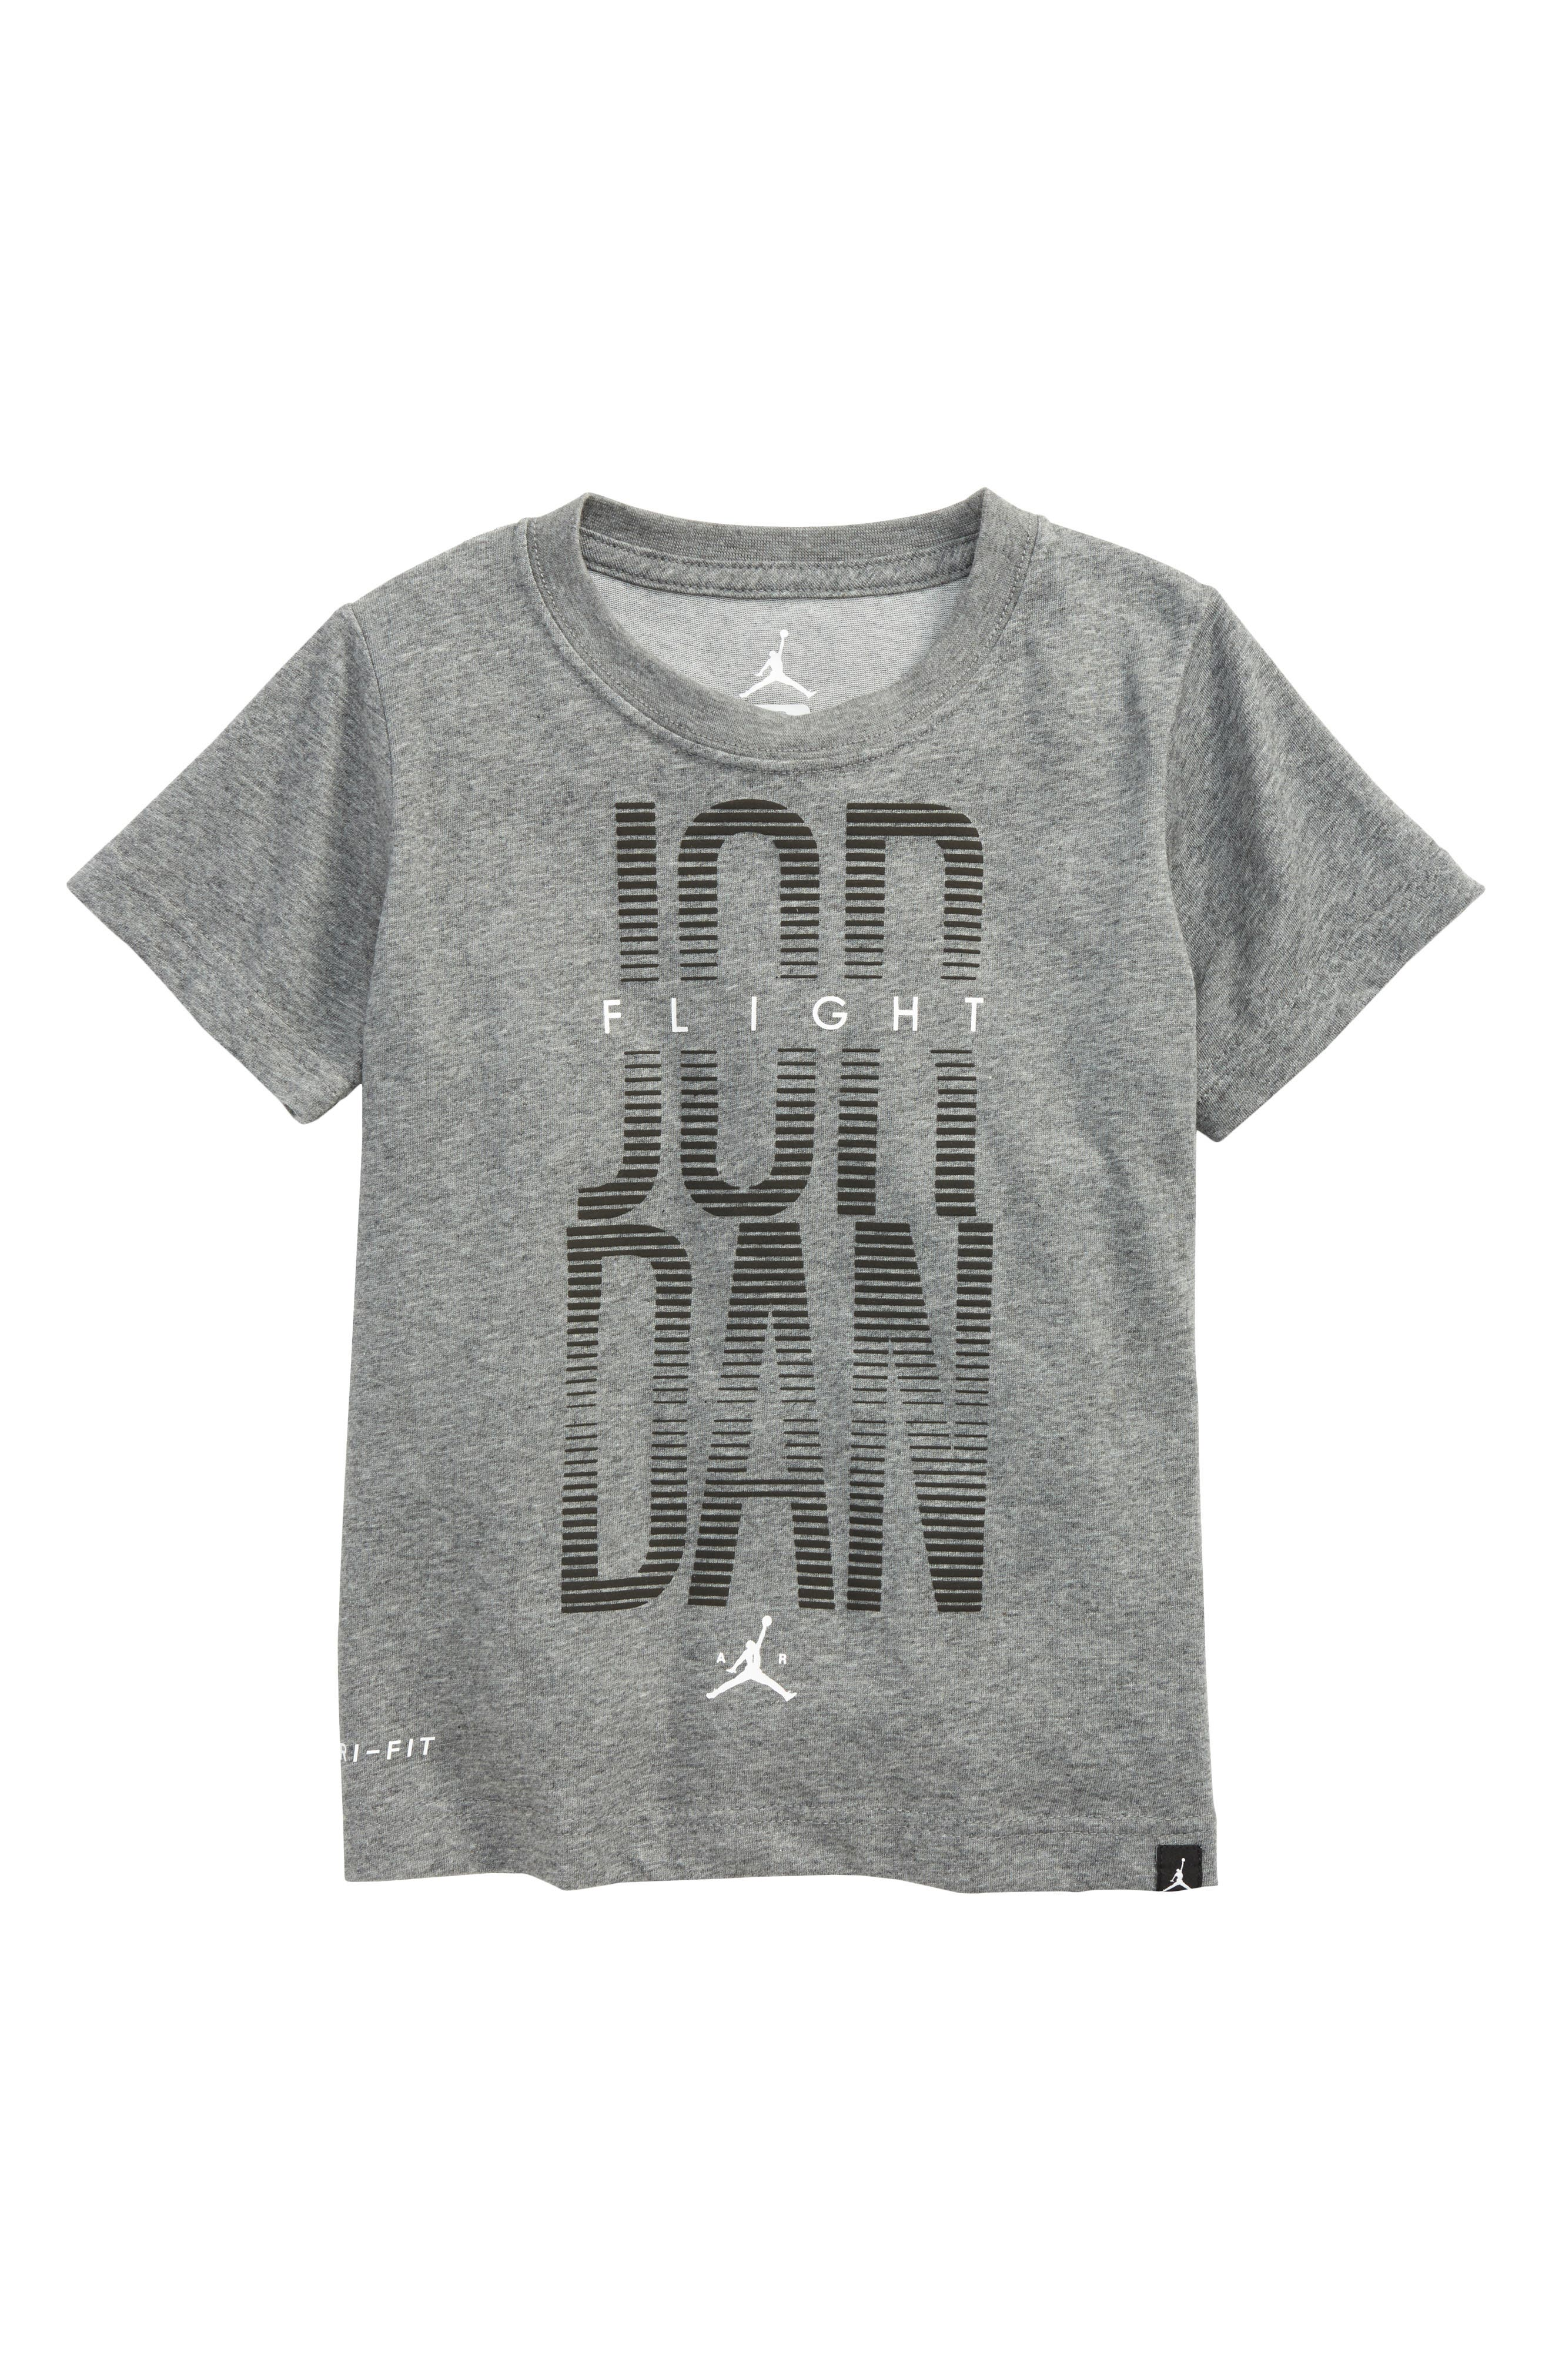 Jordan Flight Dri-FIT Graphic T-Shirt (Toddler Boys & Little Boys)